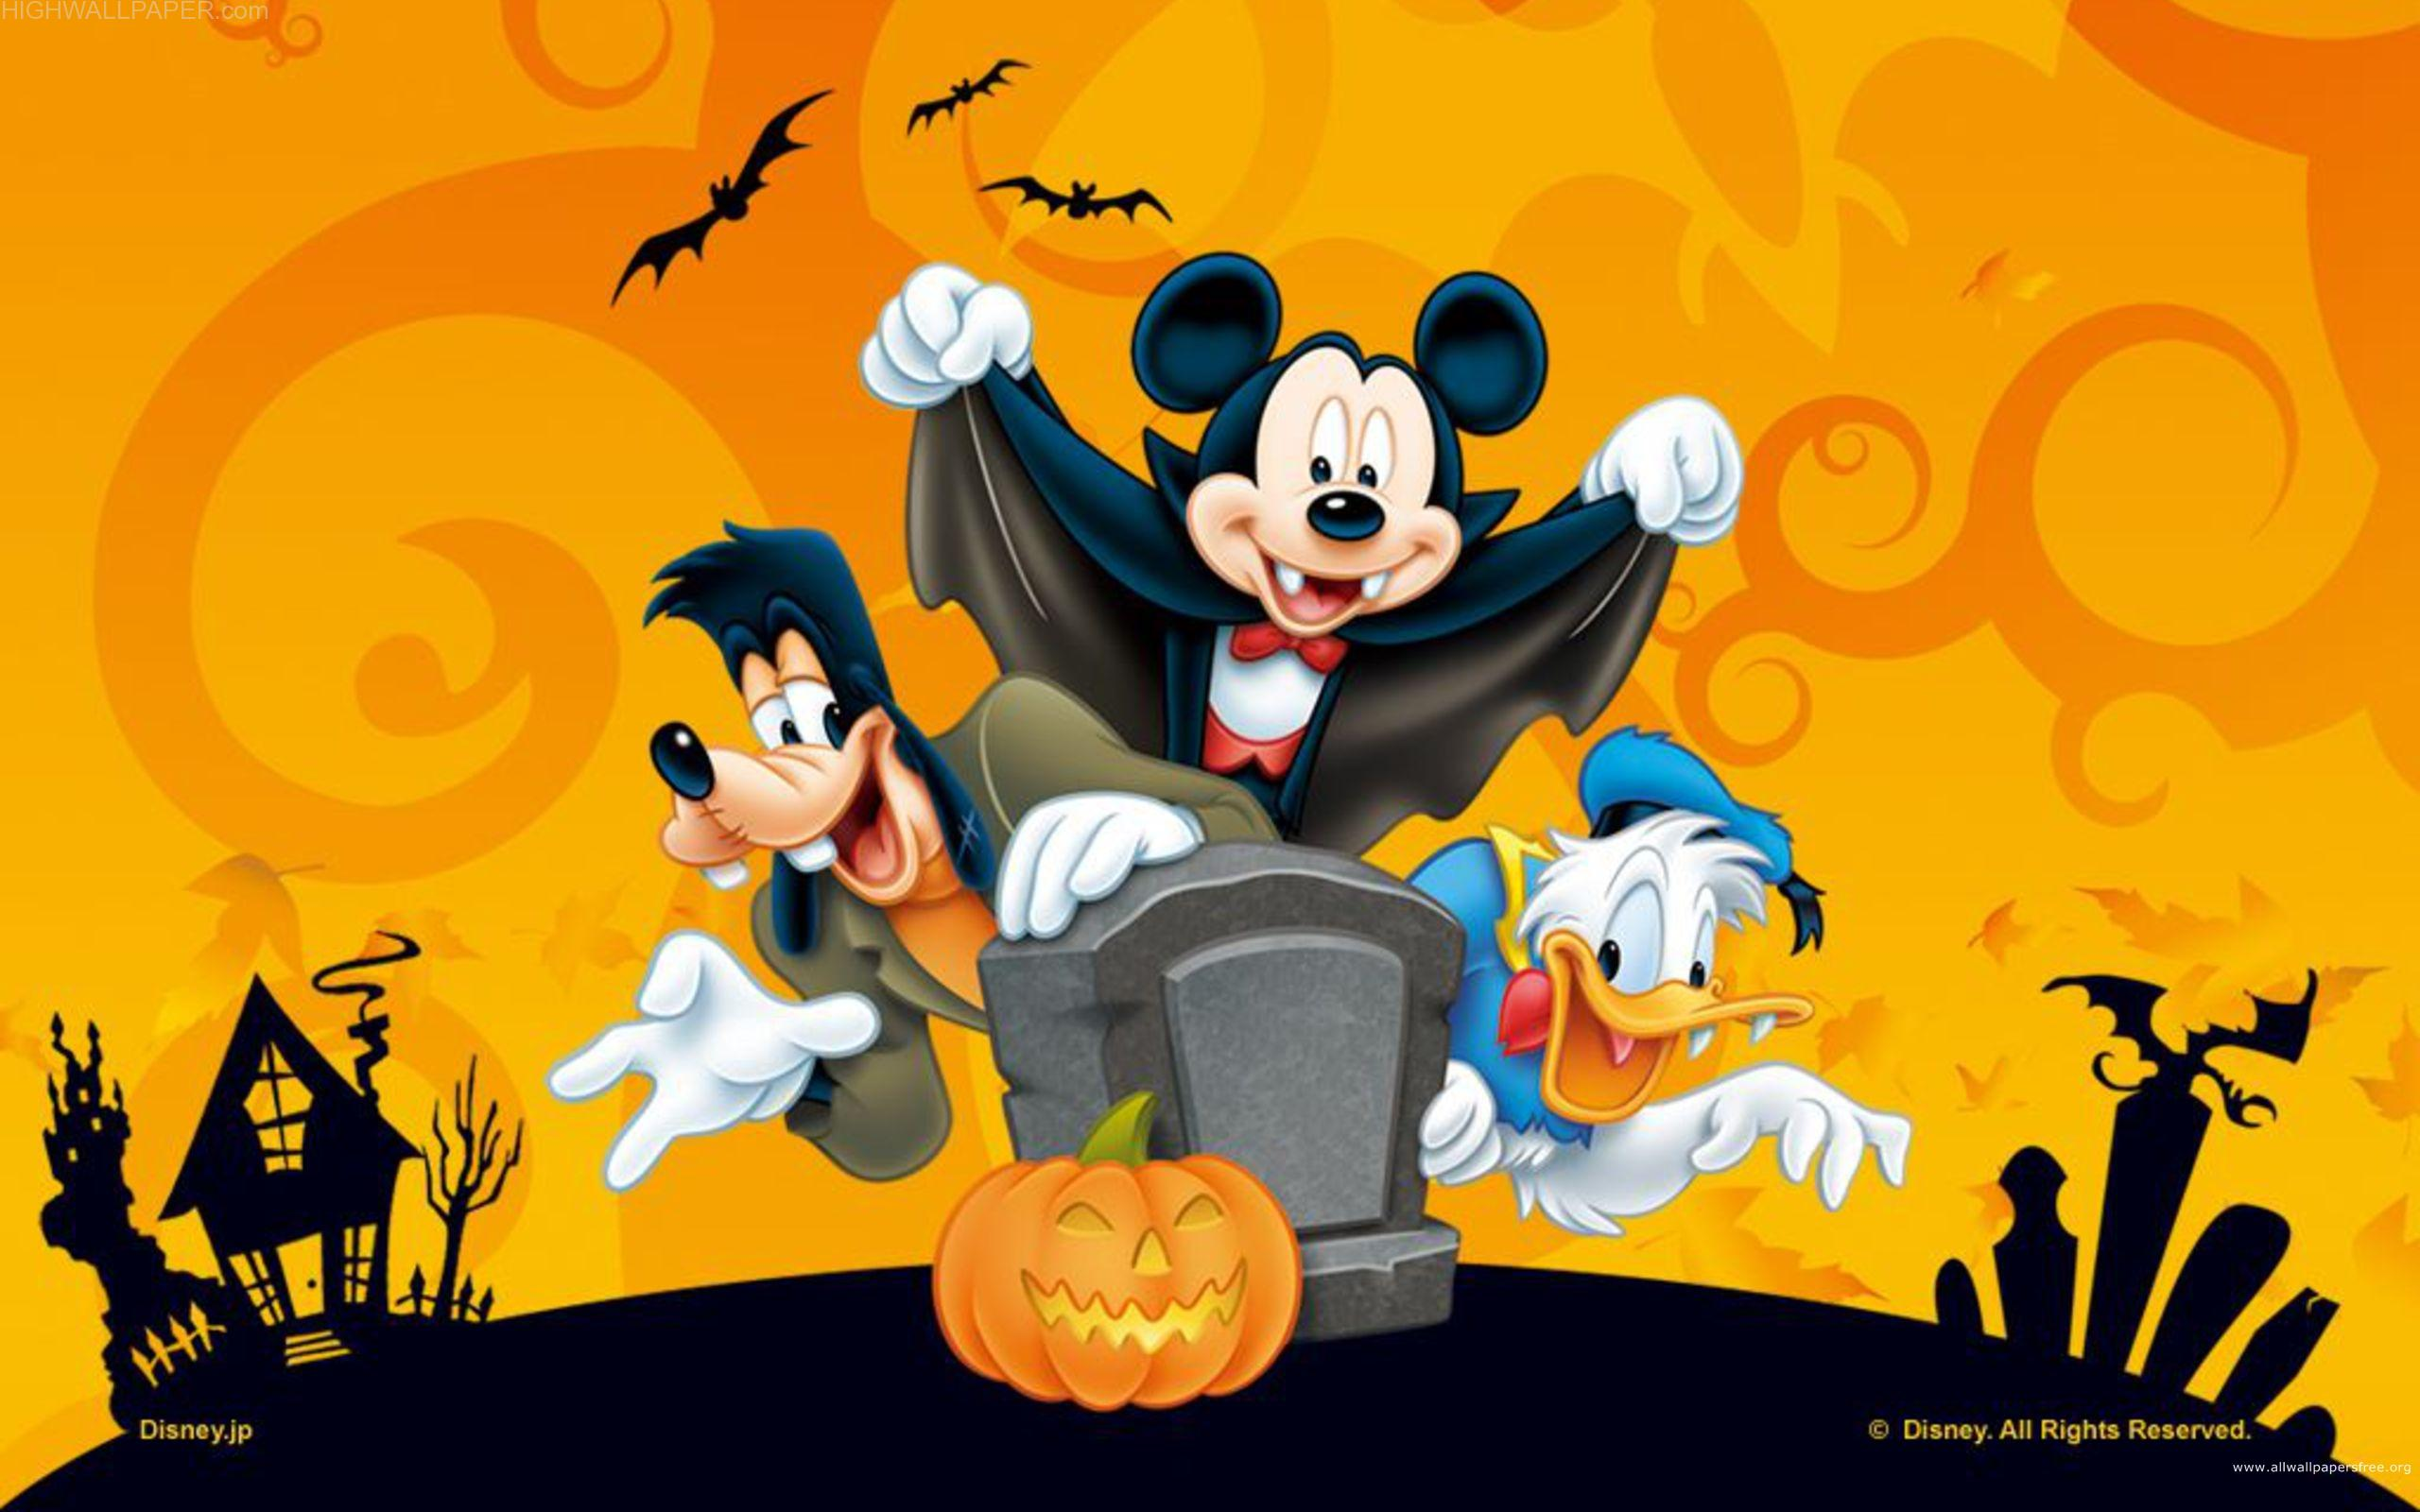 Micky Mouse Donald Goofy HAppy Helloween